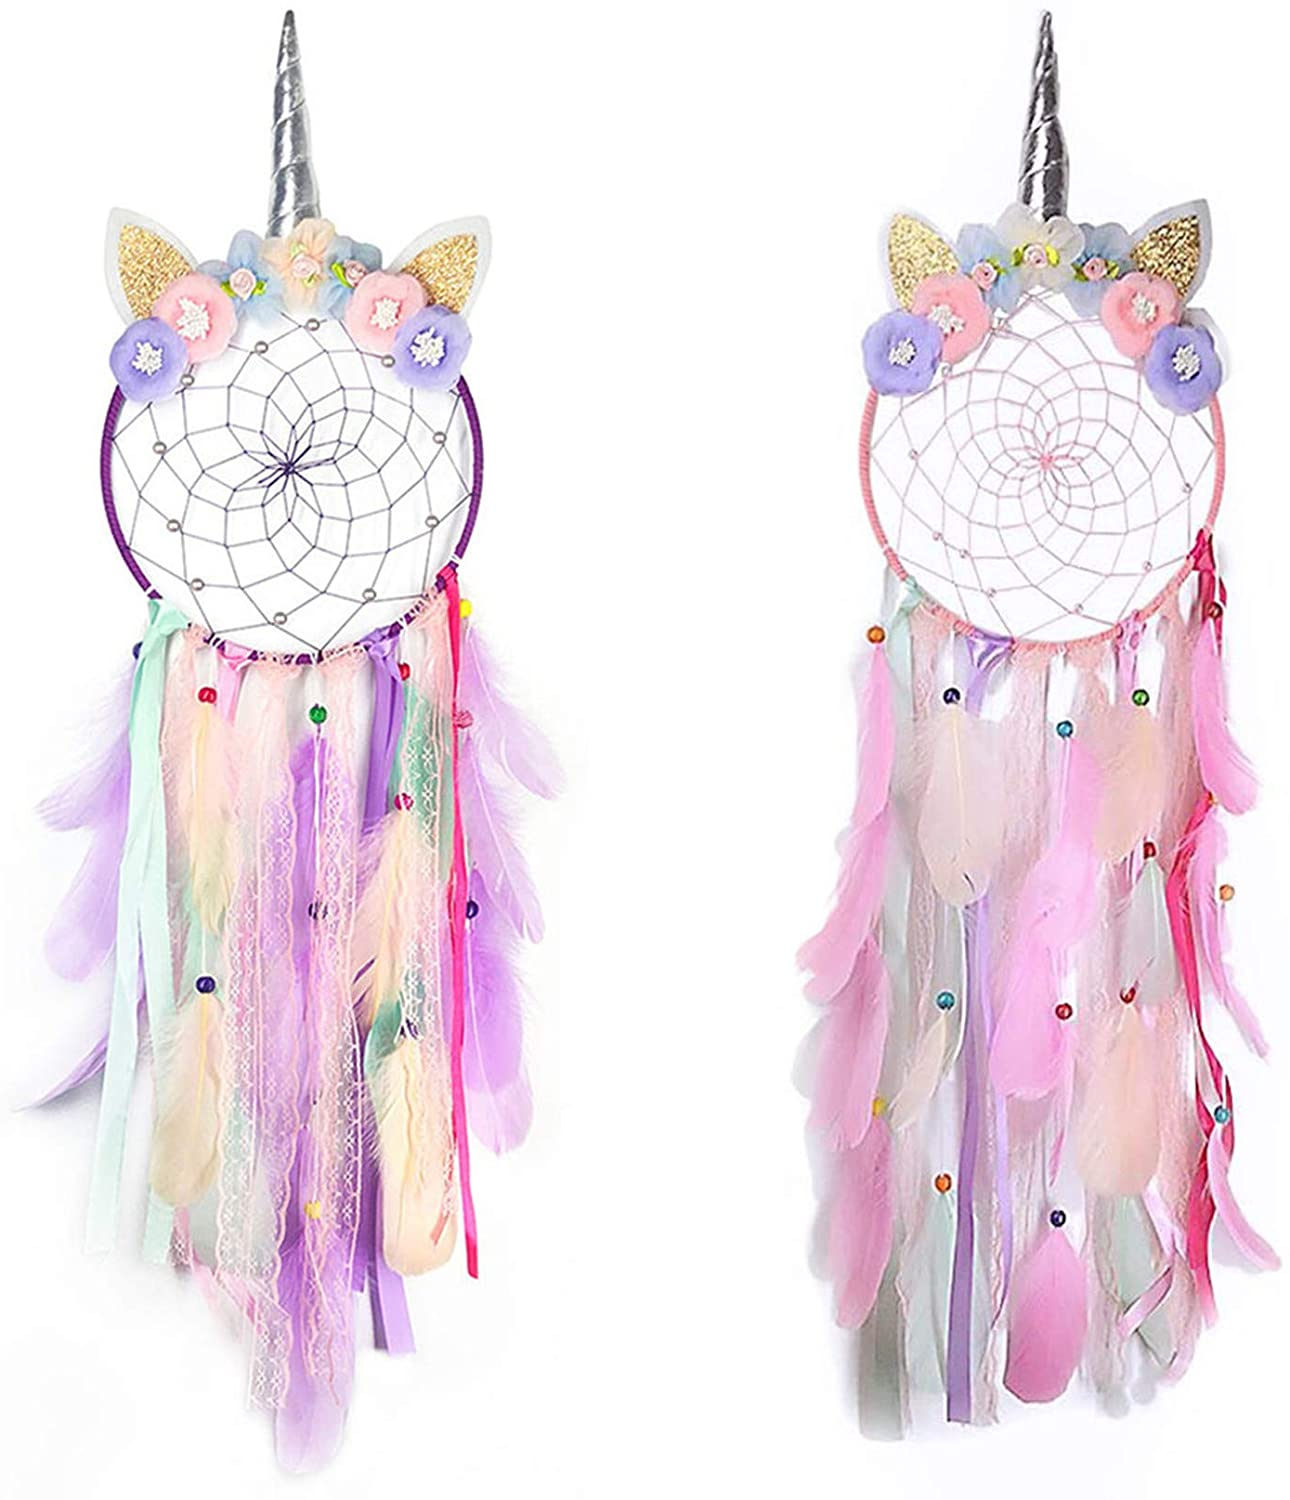 Rozwkeo 2 pcs Unicorn Dream Catchers for Girls Baby Kids Bedroom Teen Room Wall Decor Pink with Purple Dream Catcher Flowers Wall Hanging Decoration for Nursery Home Feather Ornament Festival Gift